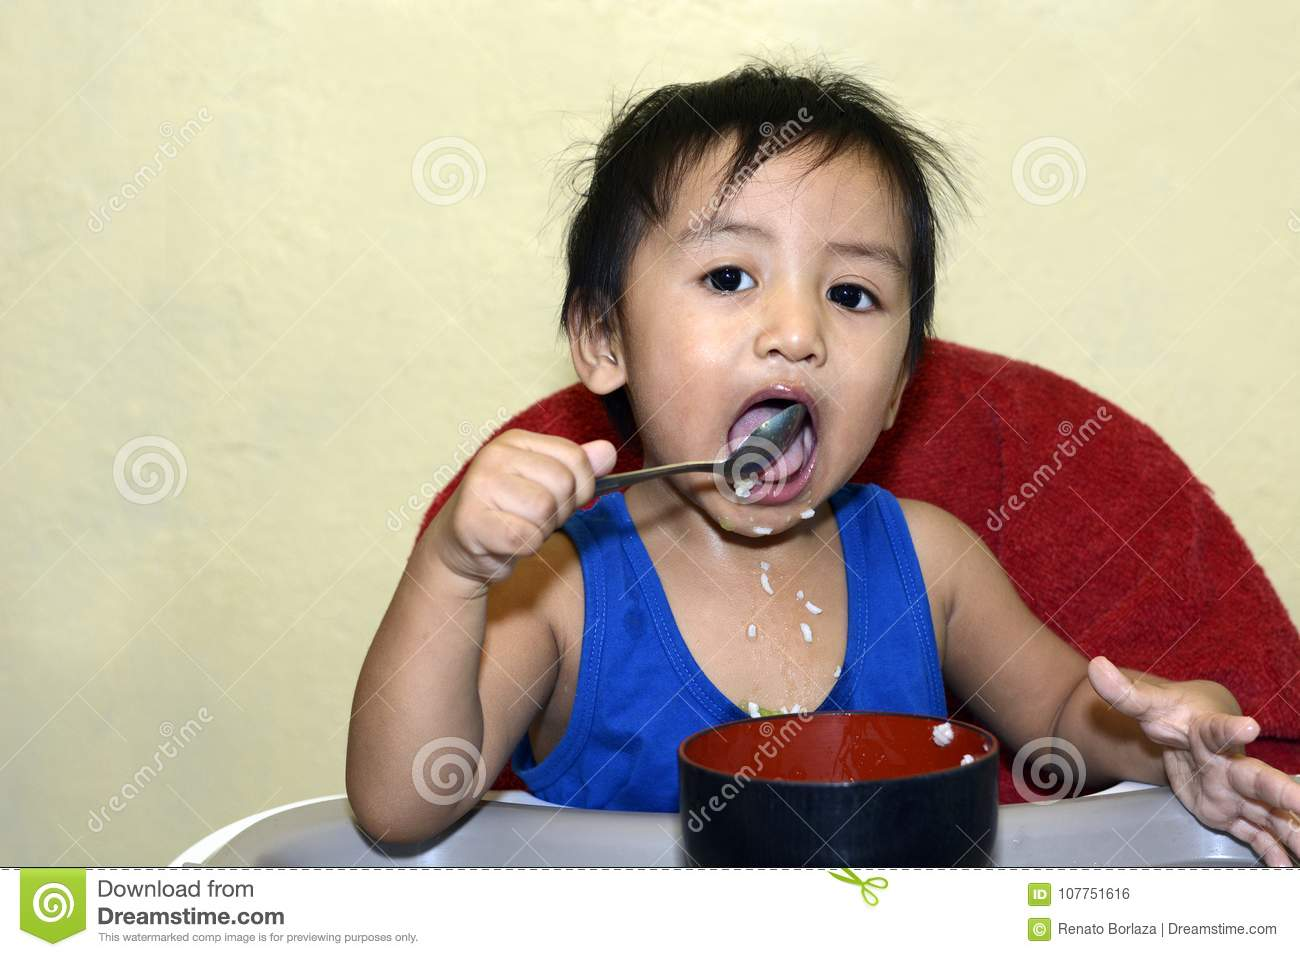 Download One 1 Year Old Asian Baby Boy Learning To Eat By Himself By Spoon  sc 1 st  Dreamstime.com & One 1 Year Old Asian Baby Boy Learning To Eat By Himself By Spoon ...